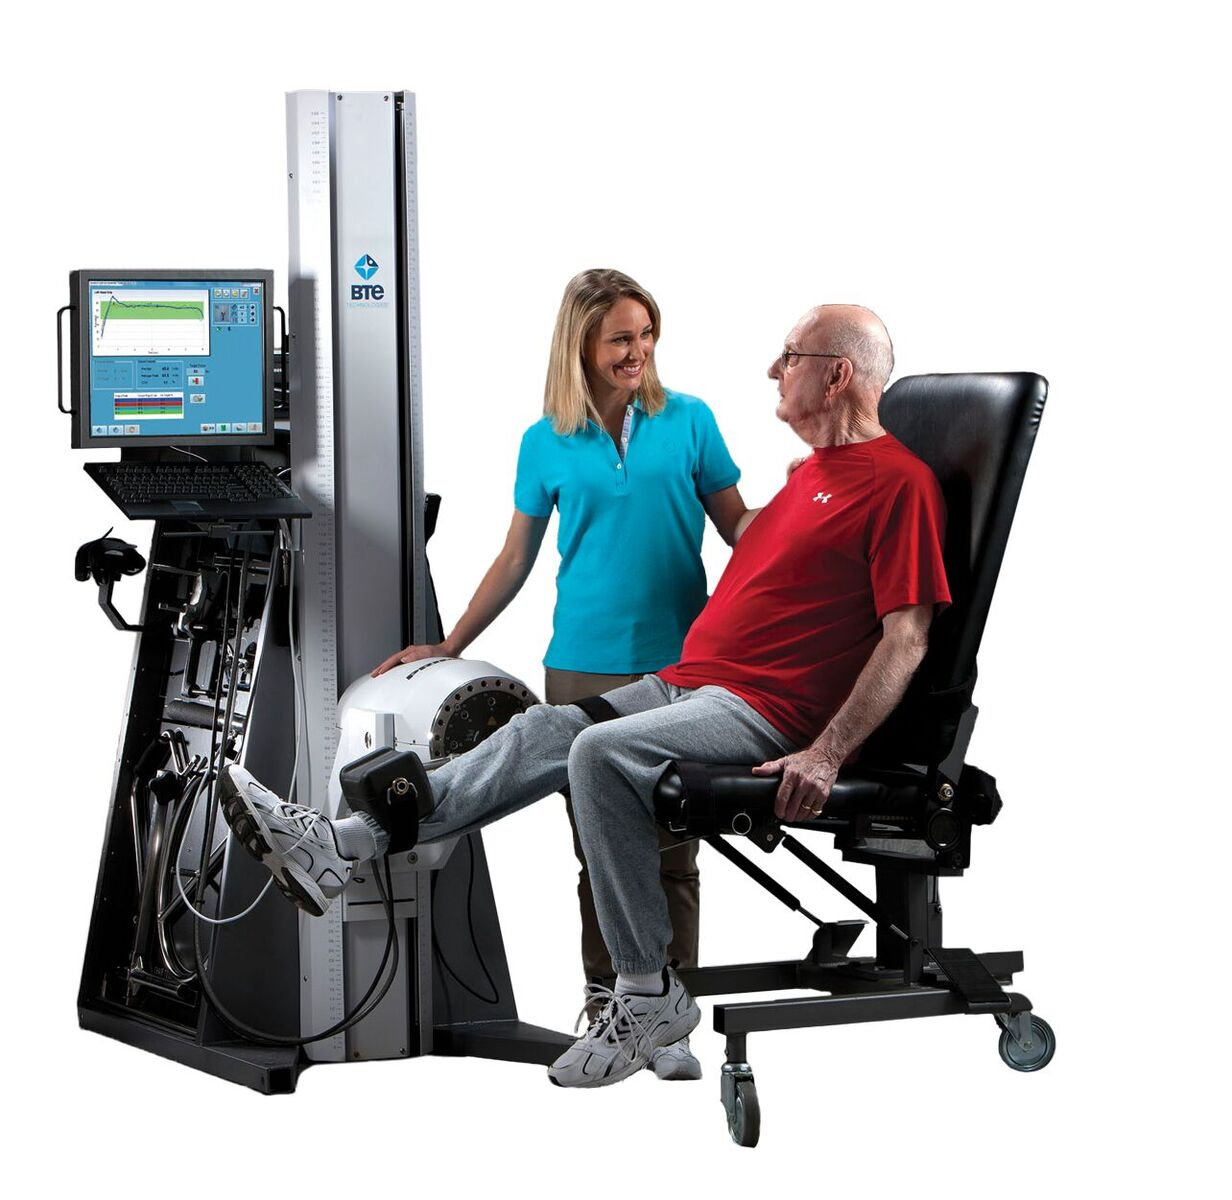 Mcu The Complete System For Neck Pain Rehabilitation